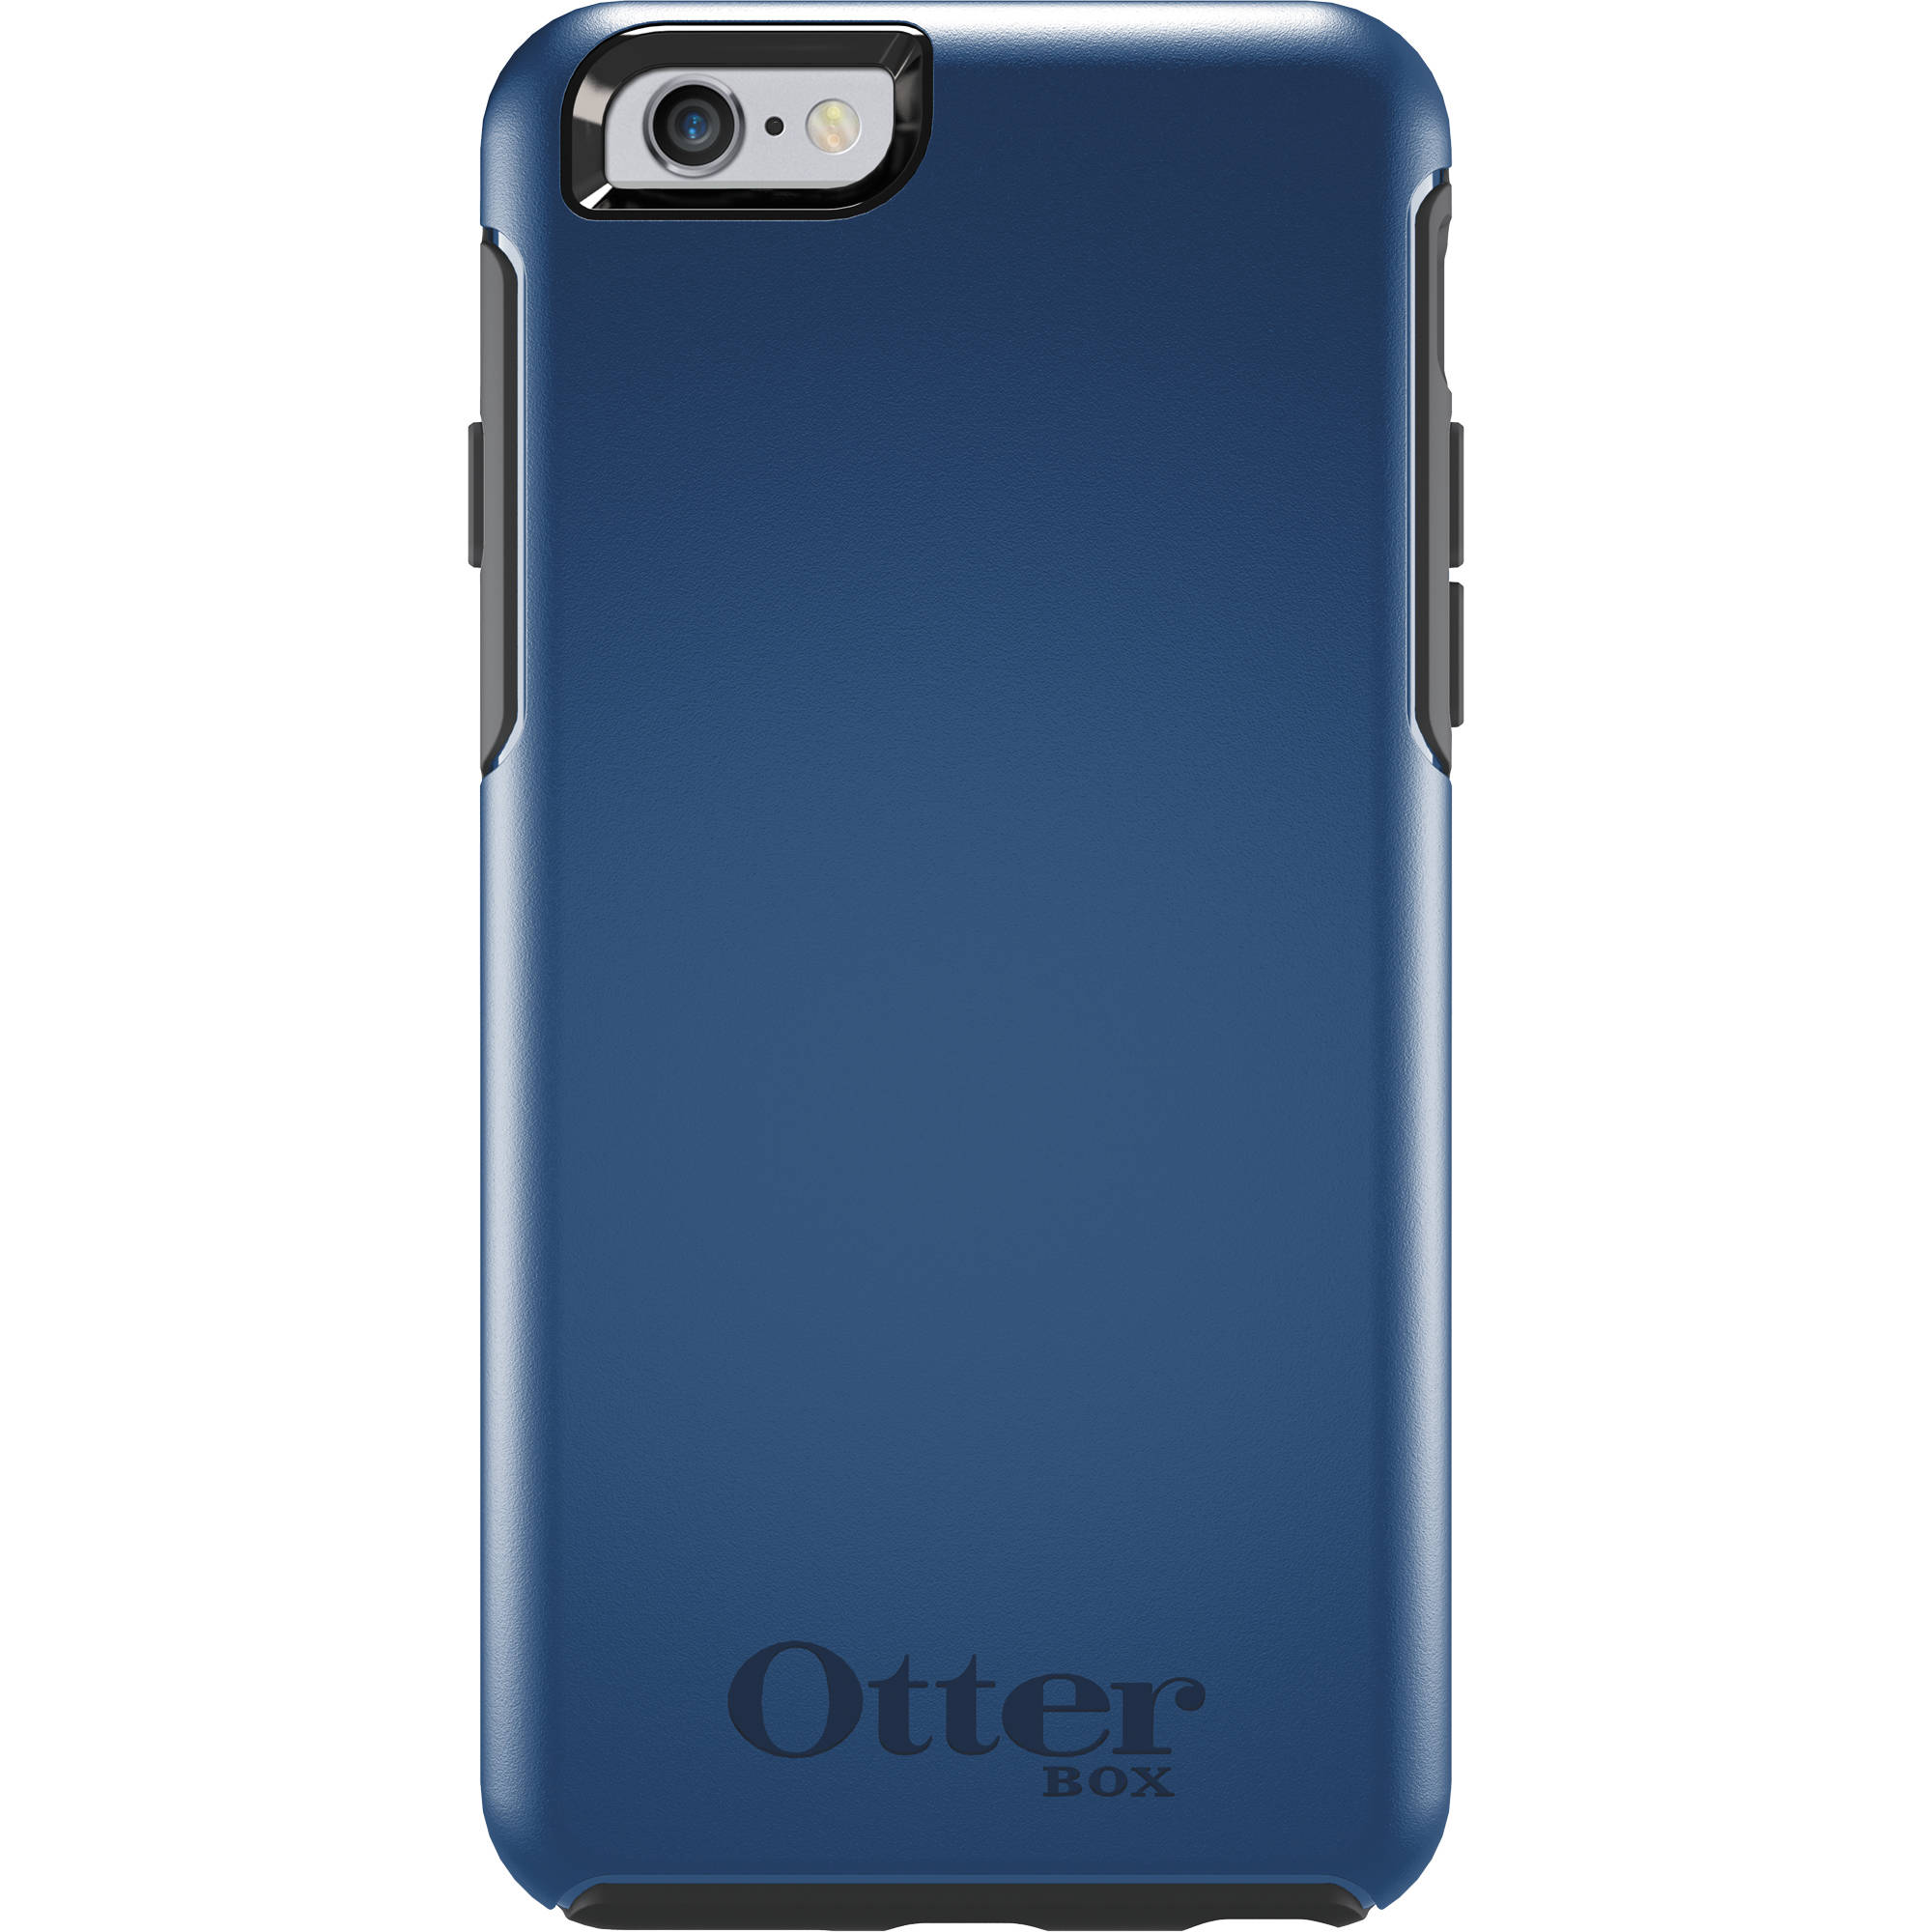 otterboxes for iphone 6 otter box symmetry series for iphone 6 6s 77 50229 b amp h 15826